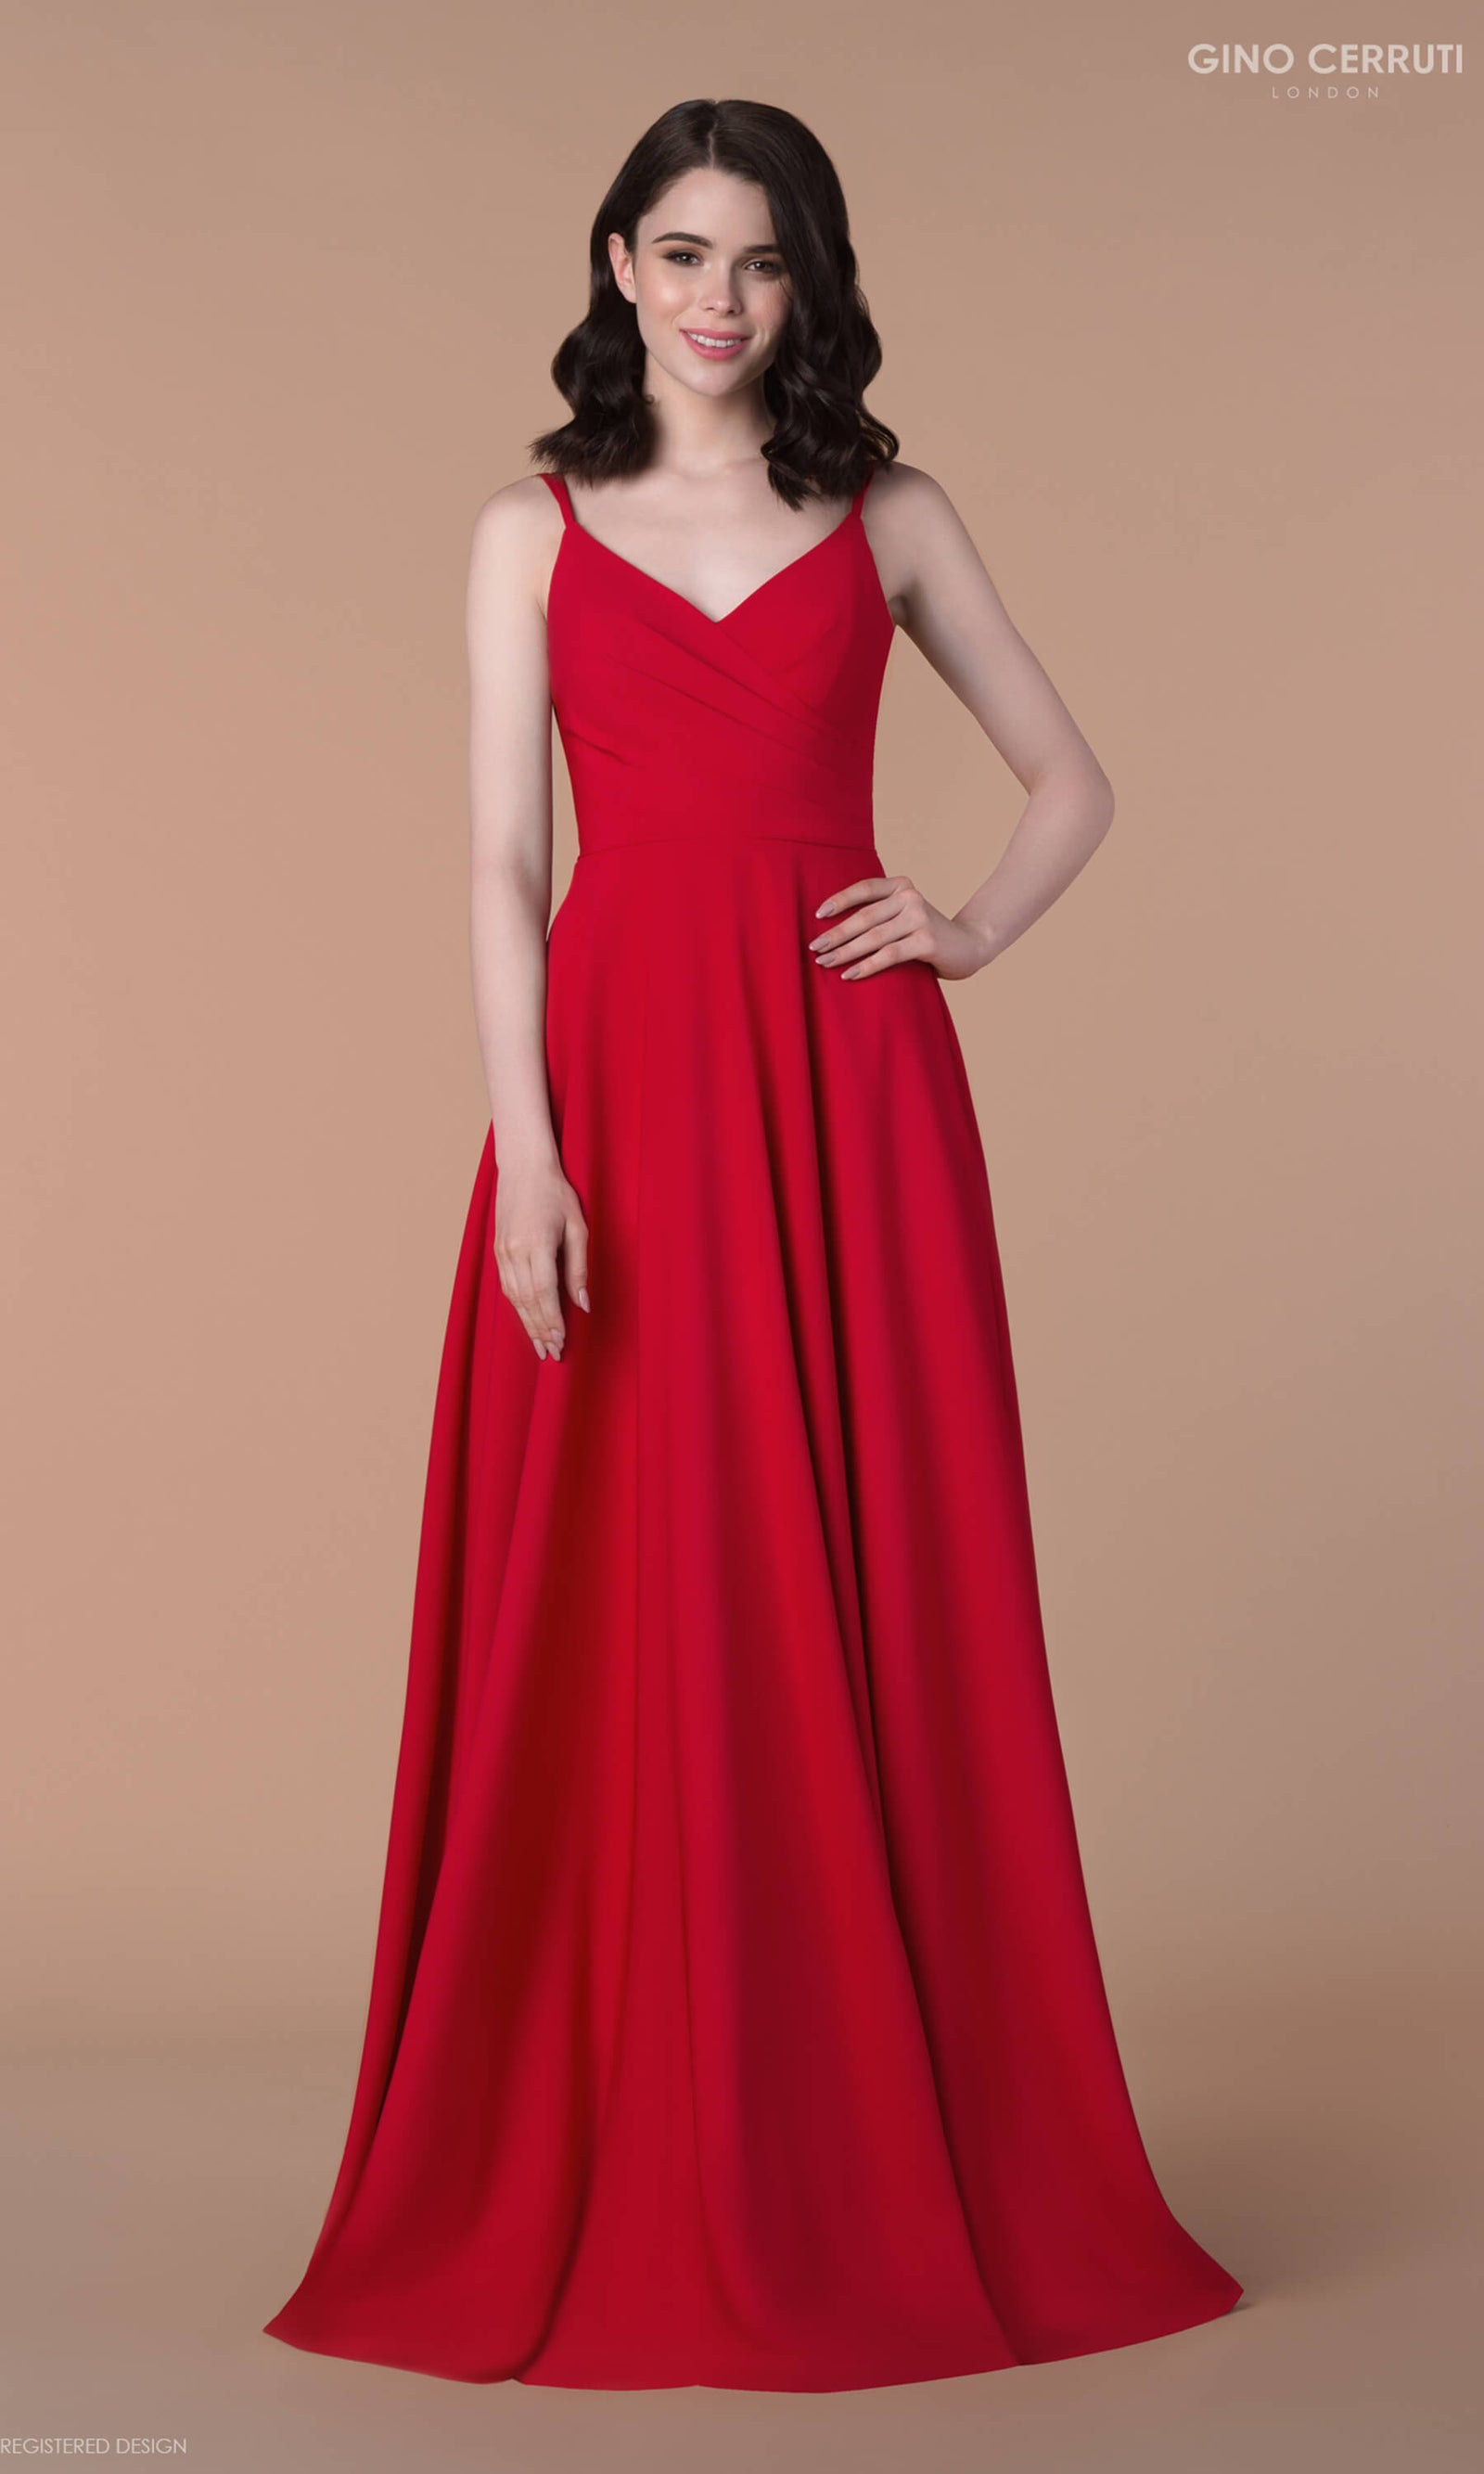 4090H Red Gino Cerruti Simple A-Line Prom Evening Dress